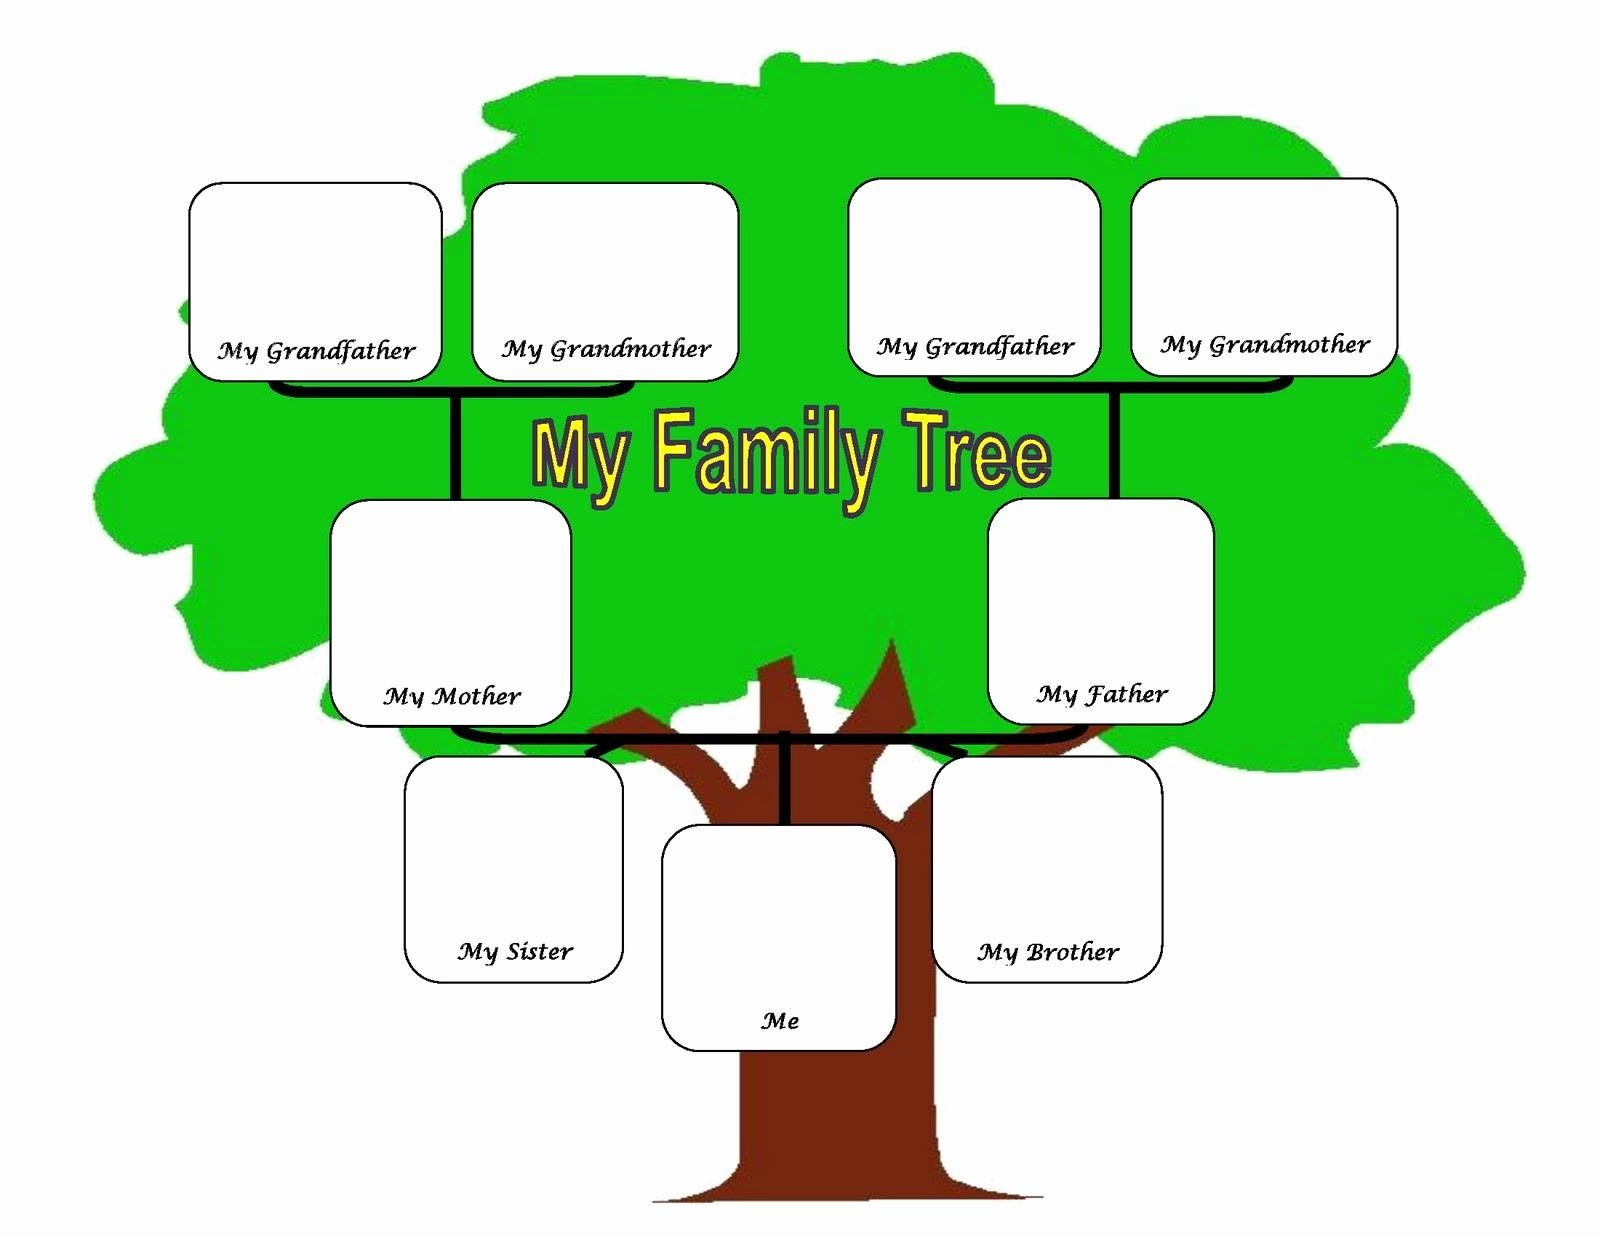 Simple Family Tree Template Luxury Family Tree Fotolip Rich Image and Wallpaper